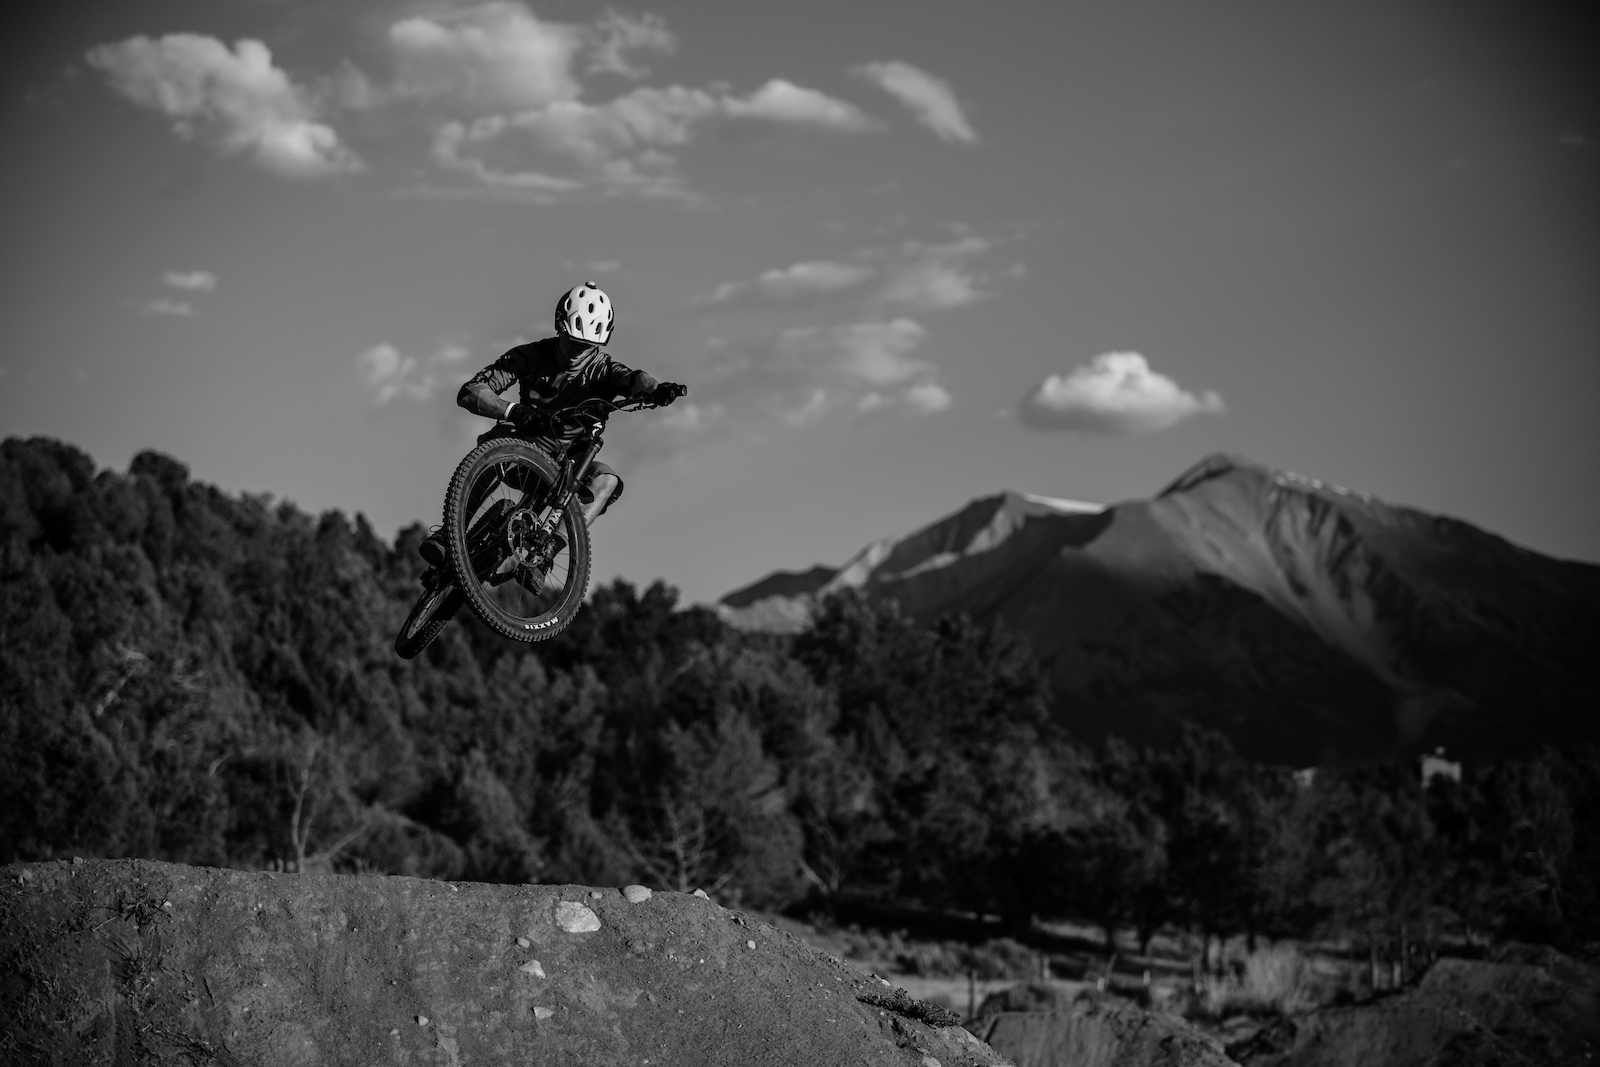 Night riding wasn t even a question when we brought it up. There is very easy access to good night riding just outside of town in Prince Creek. We hit it right at the full moon so you could see the trail your surroundings and Mt. Sopris pretty well even without a light.